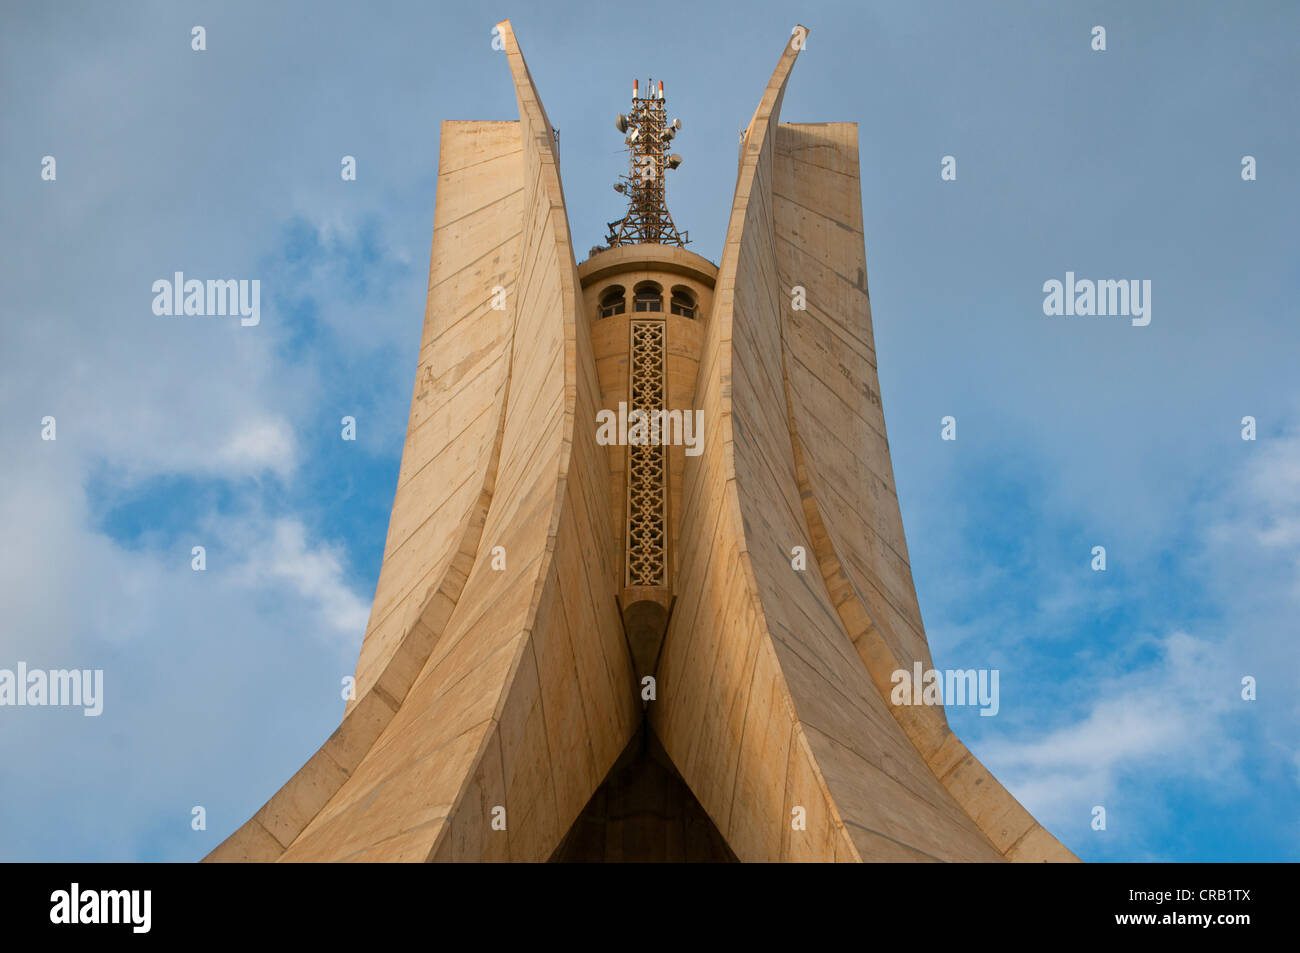 The Monument of the Martyrs in Algiers, Algeria, Africa - Stock Image